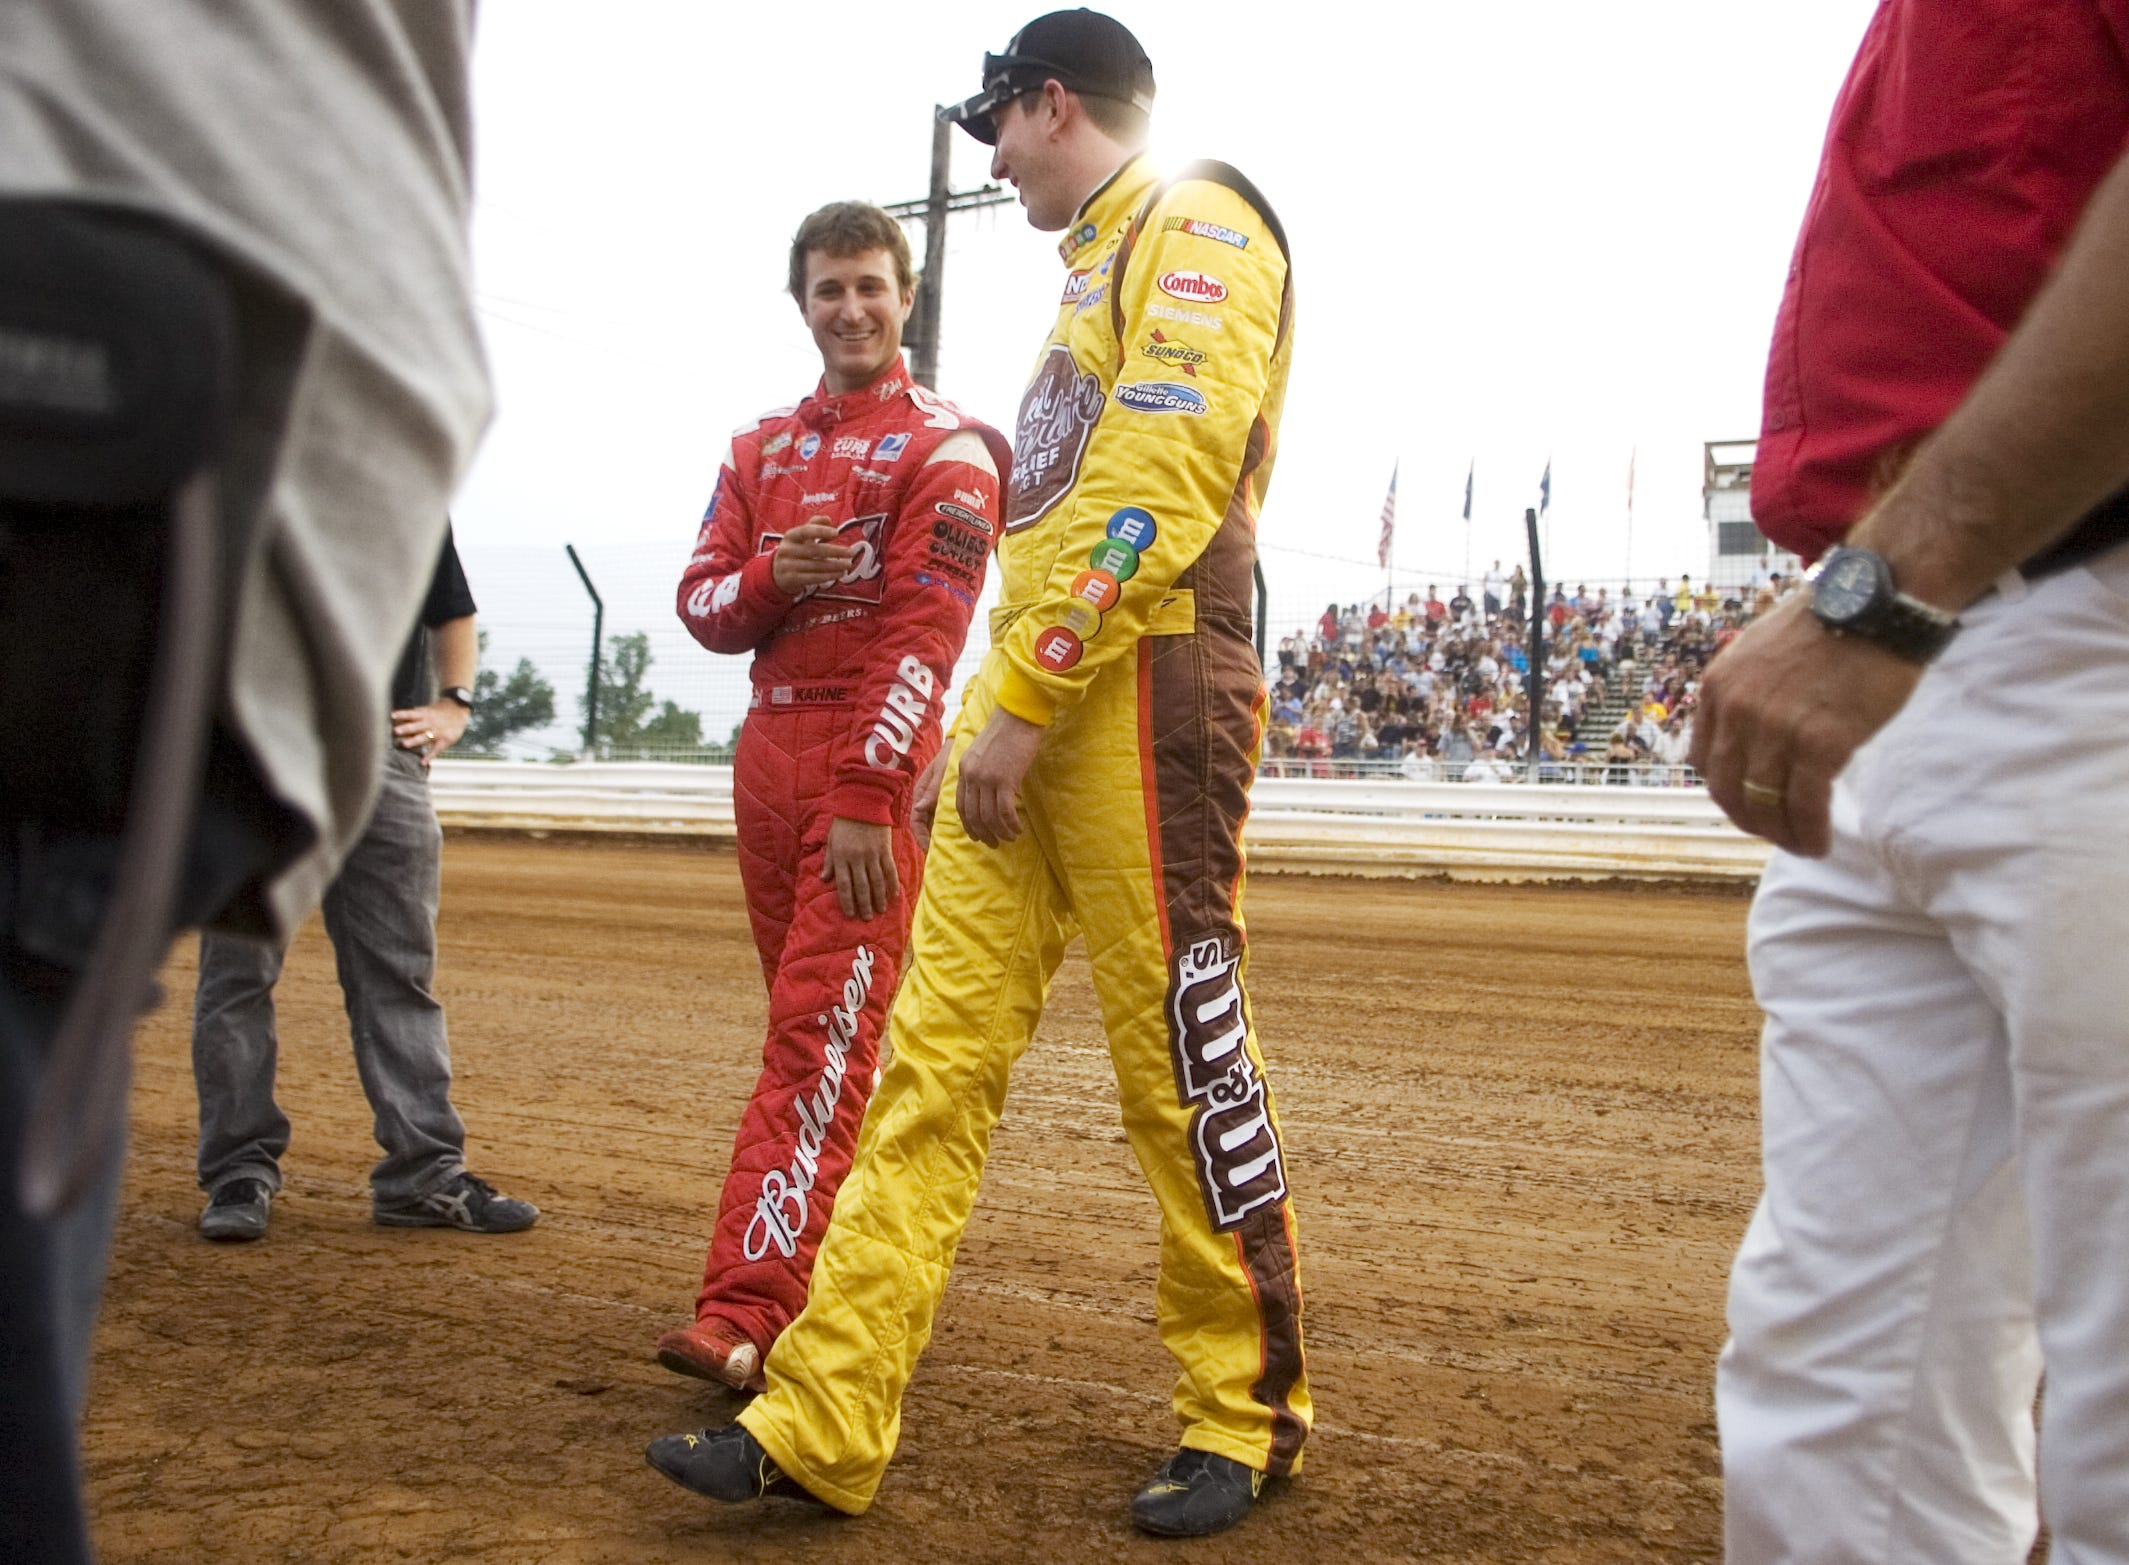 NASCAR drivers Kasey Kahne, left, and Kyle Busch walk across the track together at Williams Grove Speedway Wednesday, August 5, 2009.